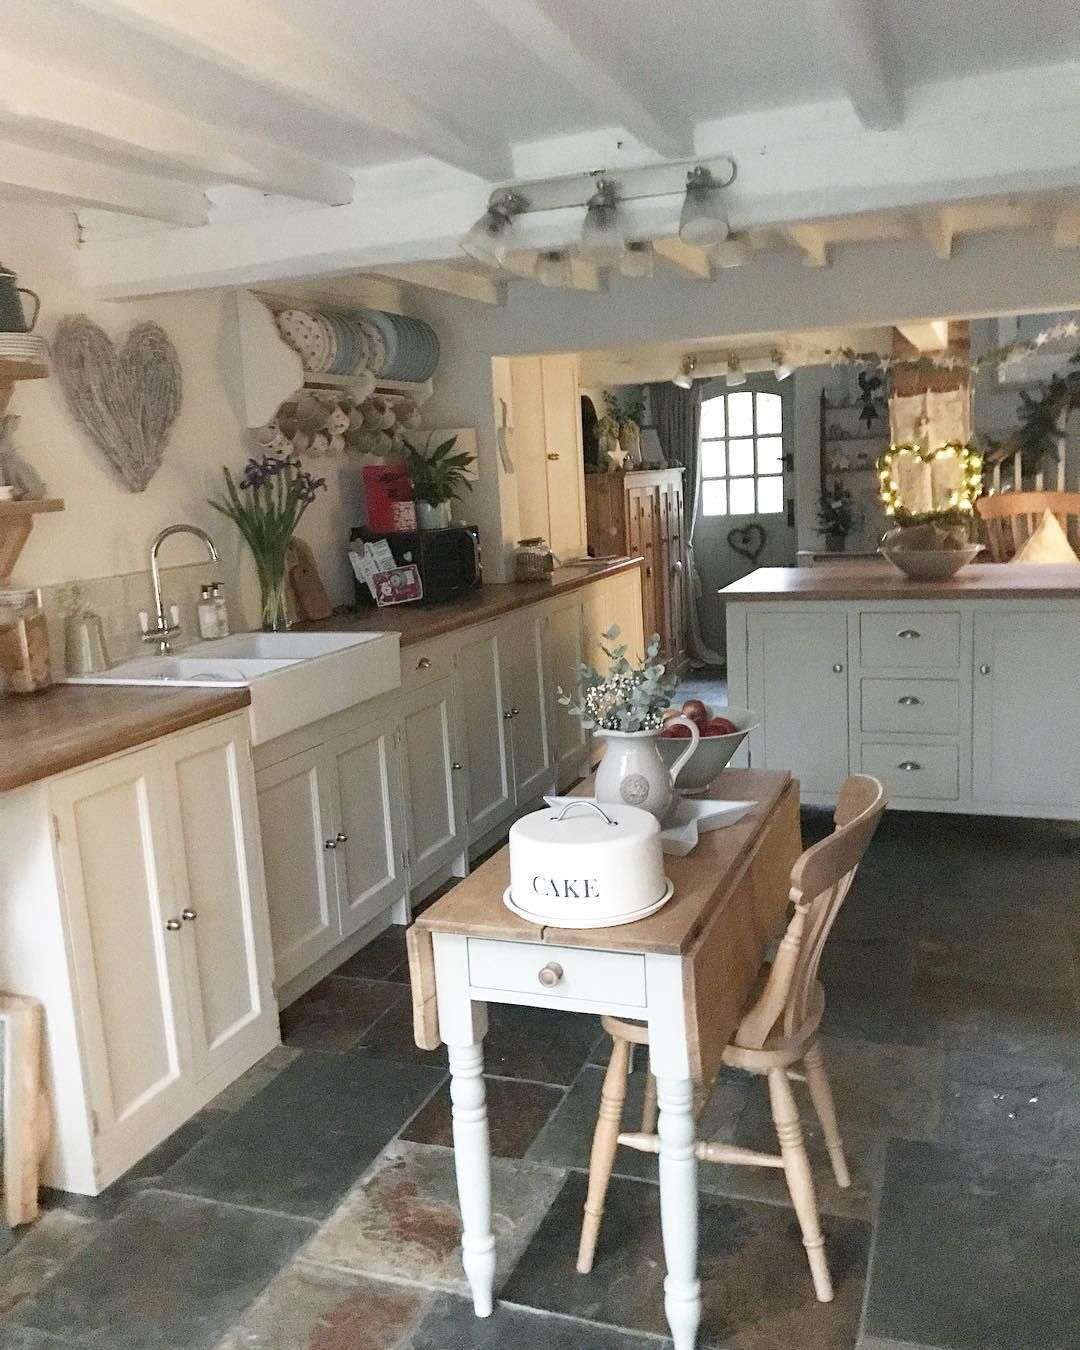 Look Into These Wonderful Approaches For Old Fashioned Countrycottagebedrooms In 2020 Farmhouse Kitchen Design Country Kitchen Home Kitchens